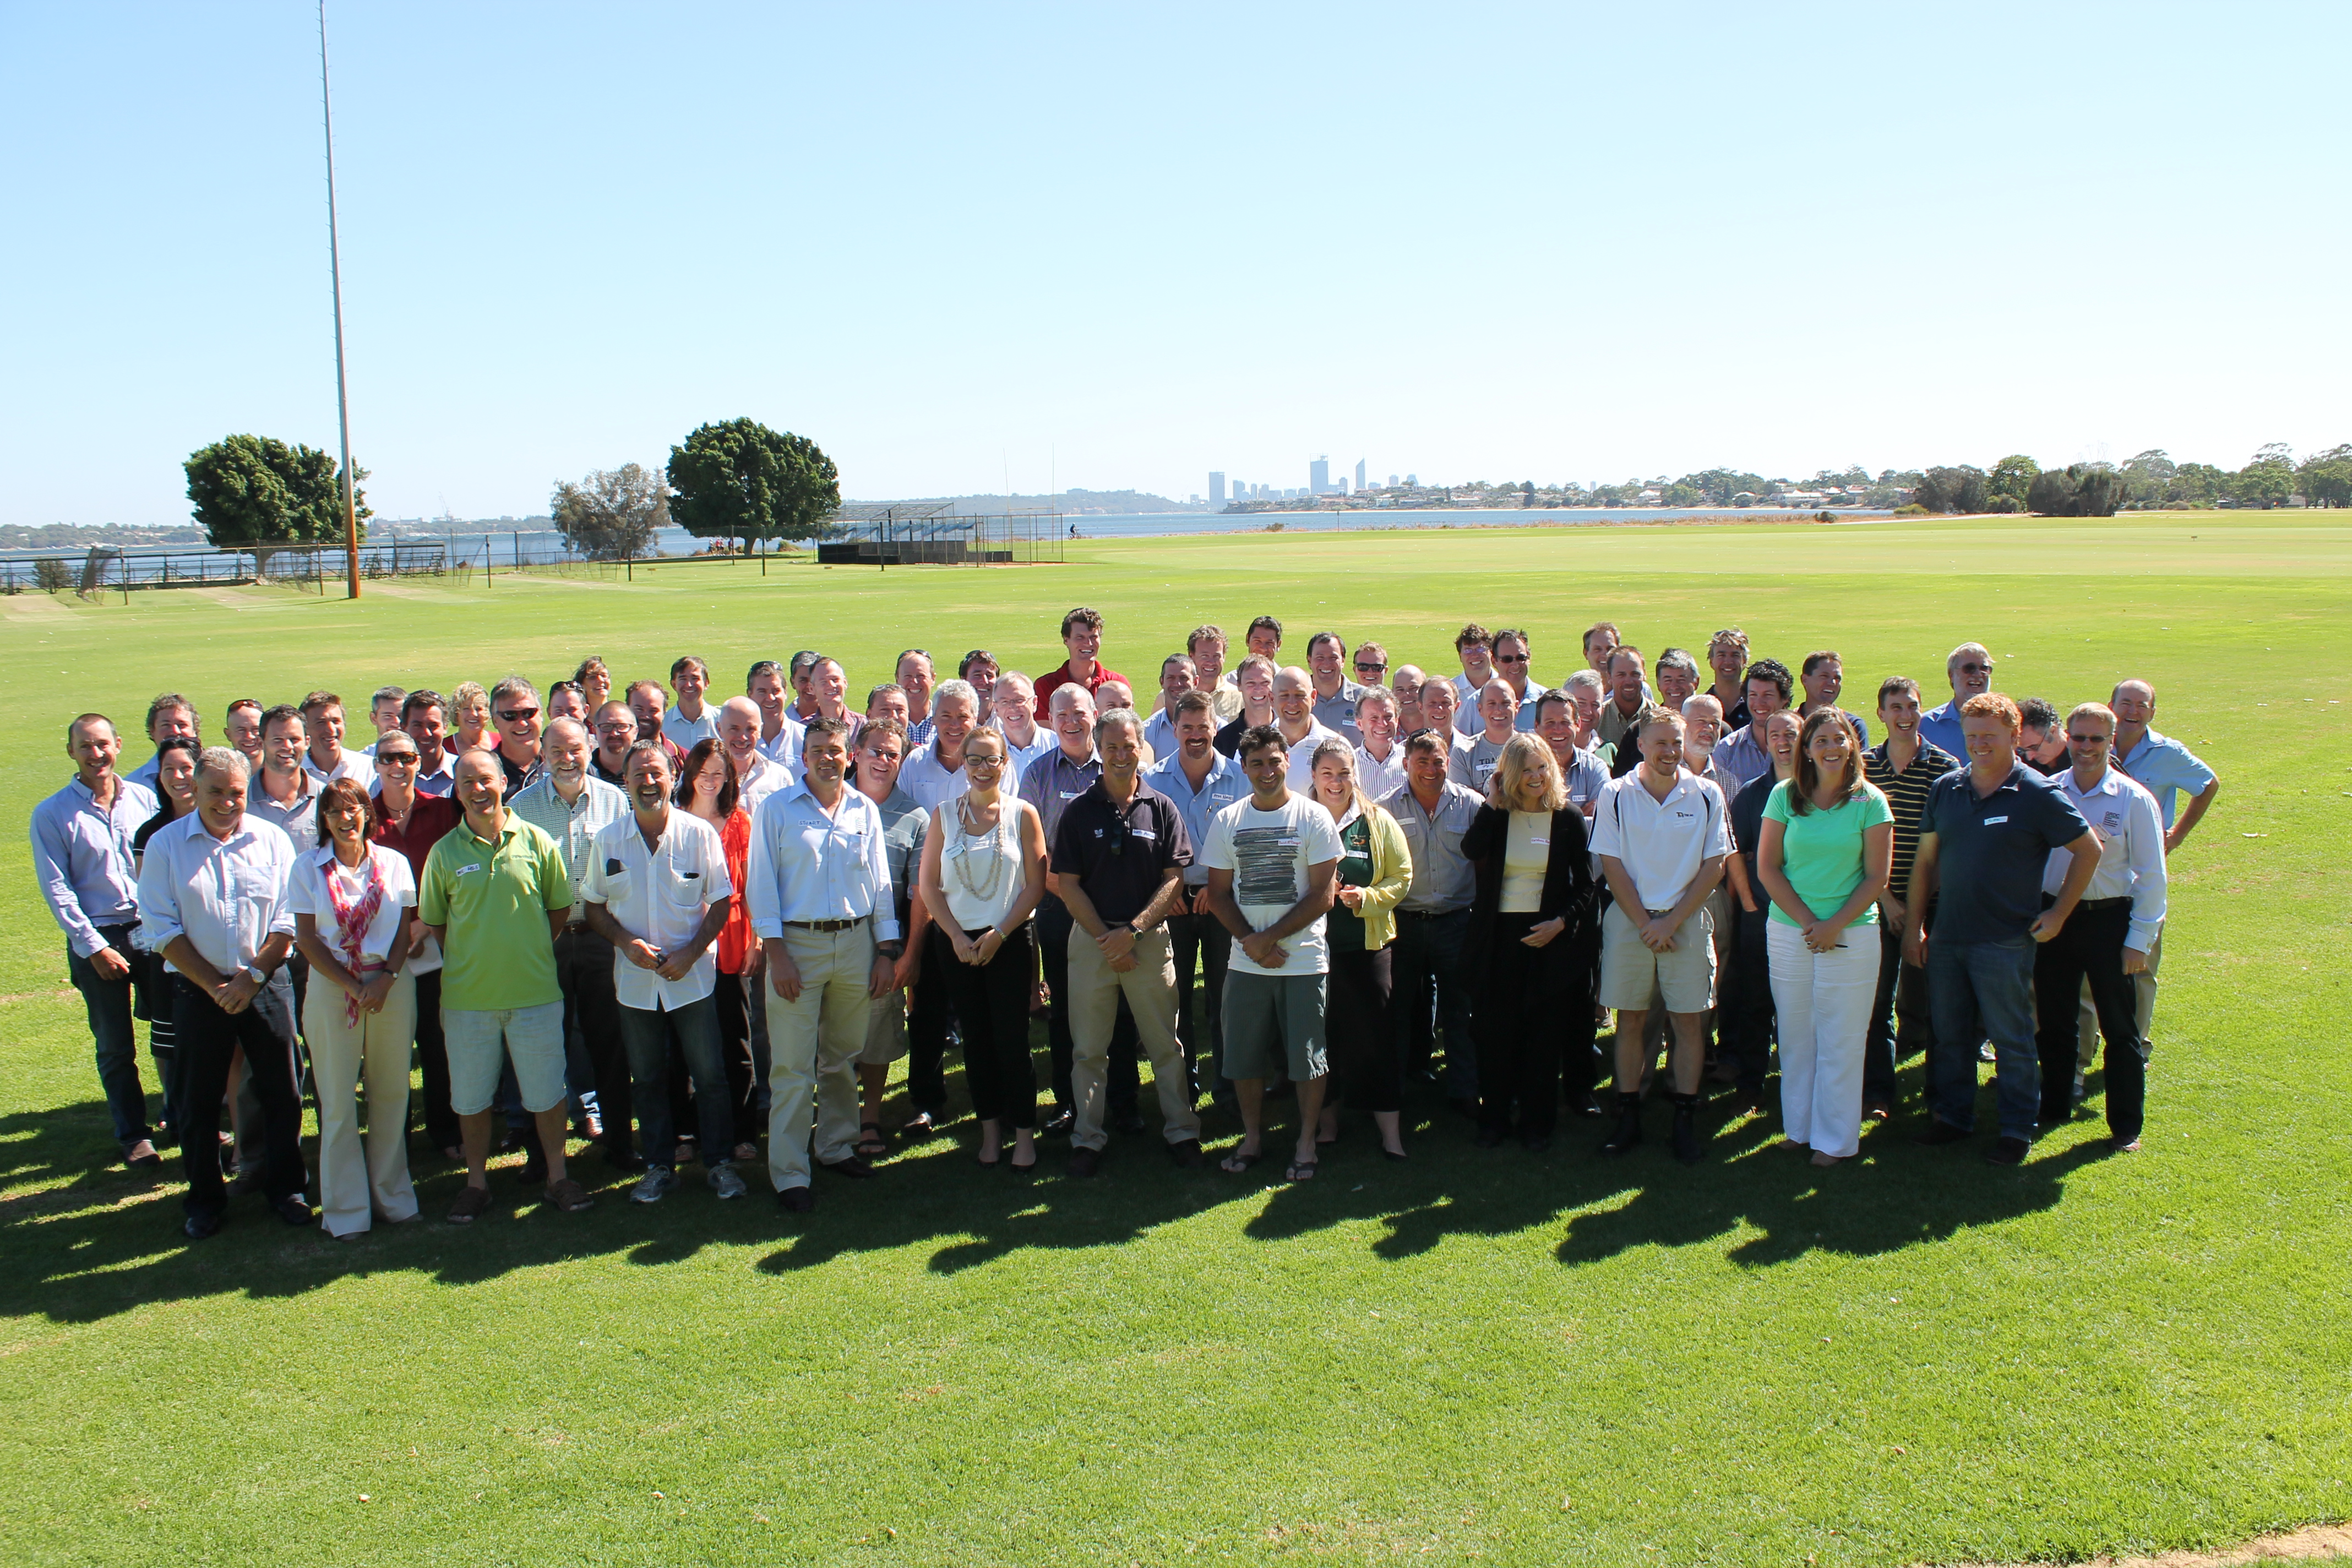 Personnel from GRDC and the five Regional Cropping Solutions Networks